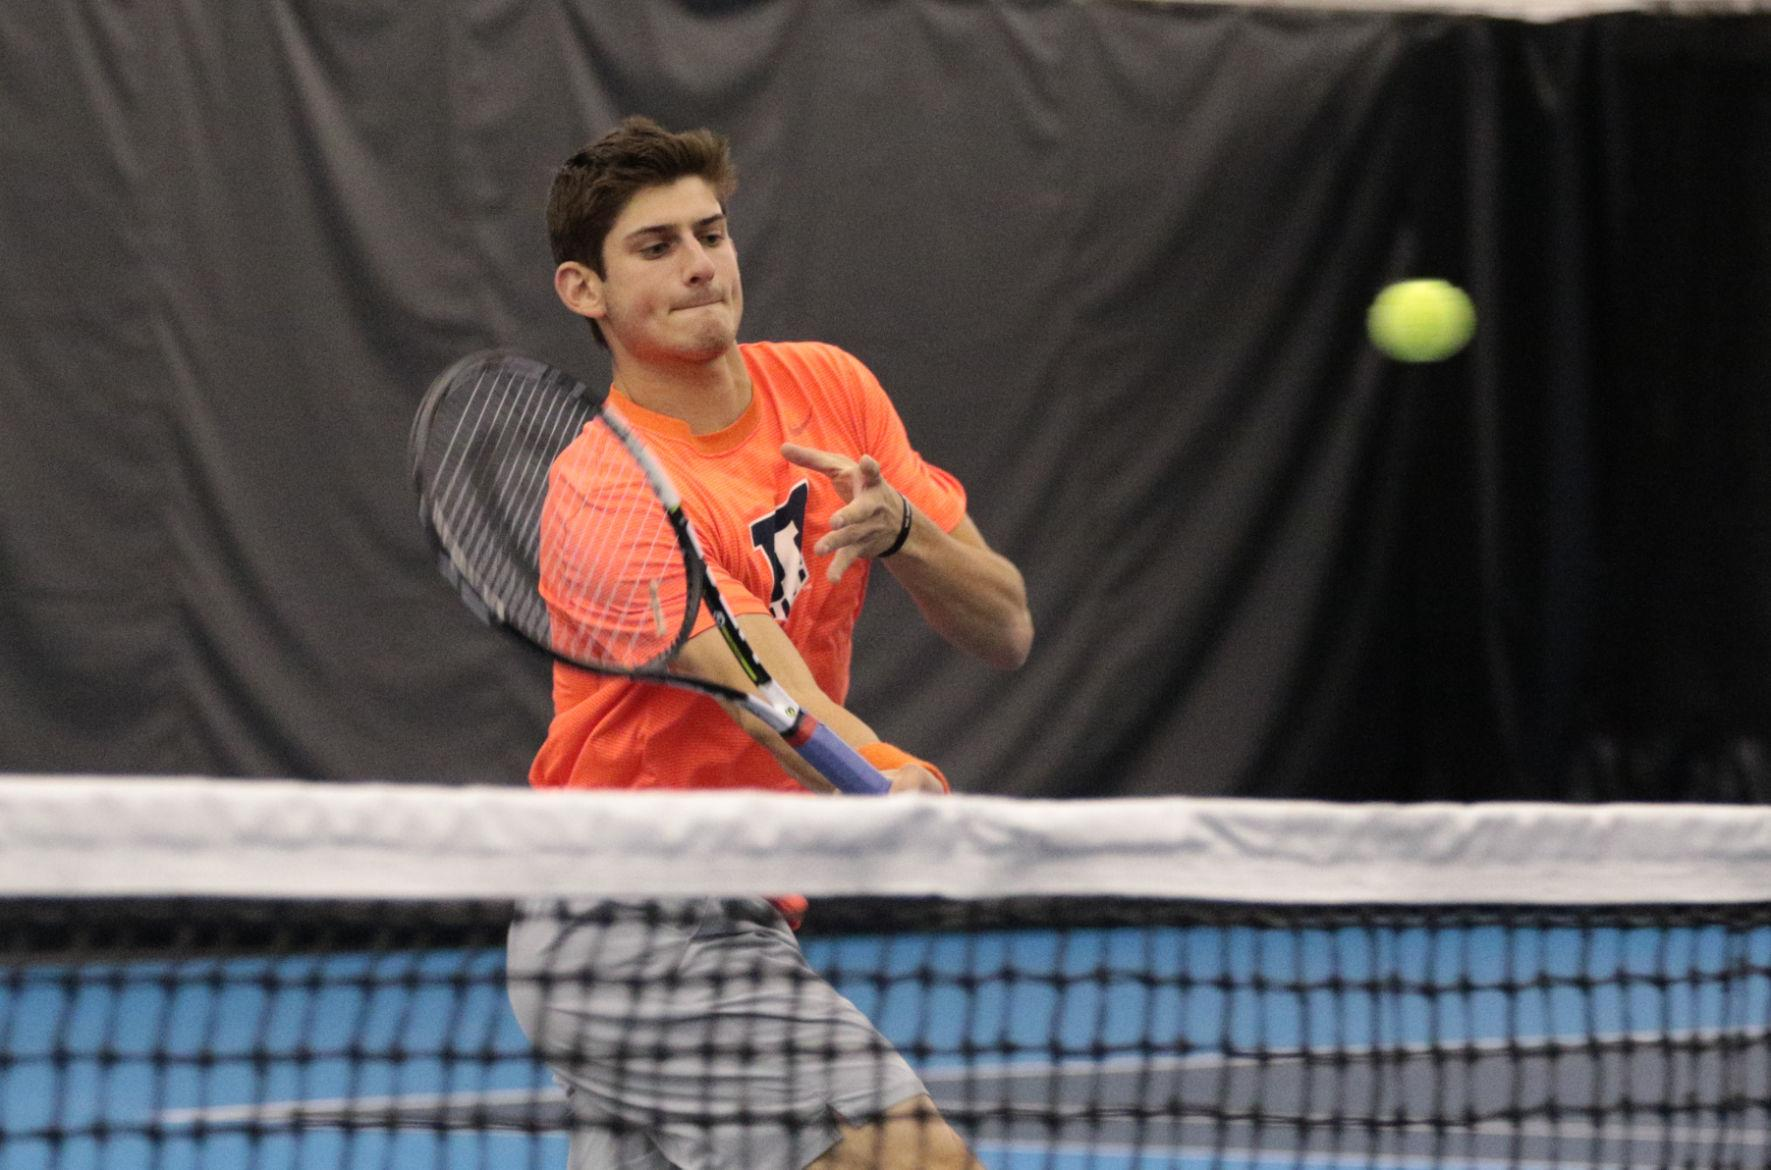 Illinois' Jared Hiltzik makes a short return during the tennis game v. Northwestern at Atkins Tennis Center on Feb. 20. Illinois won 5-2.